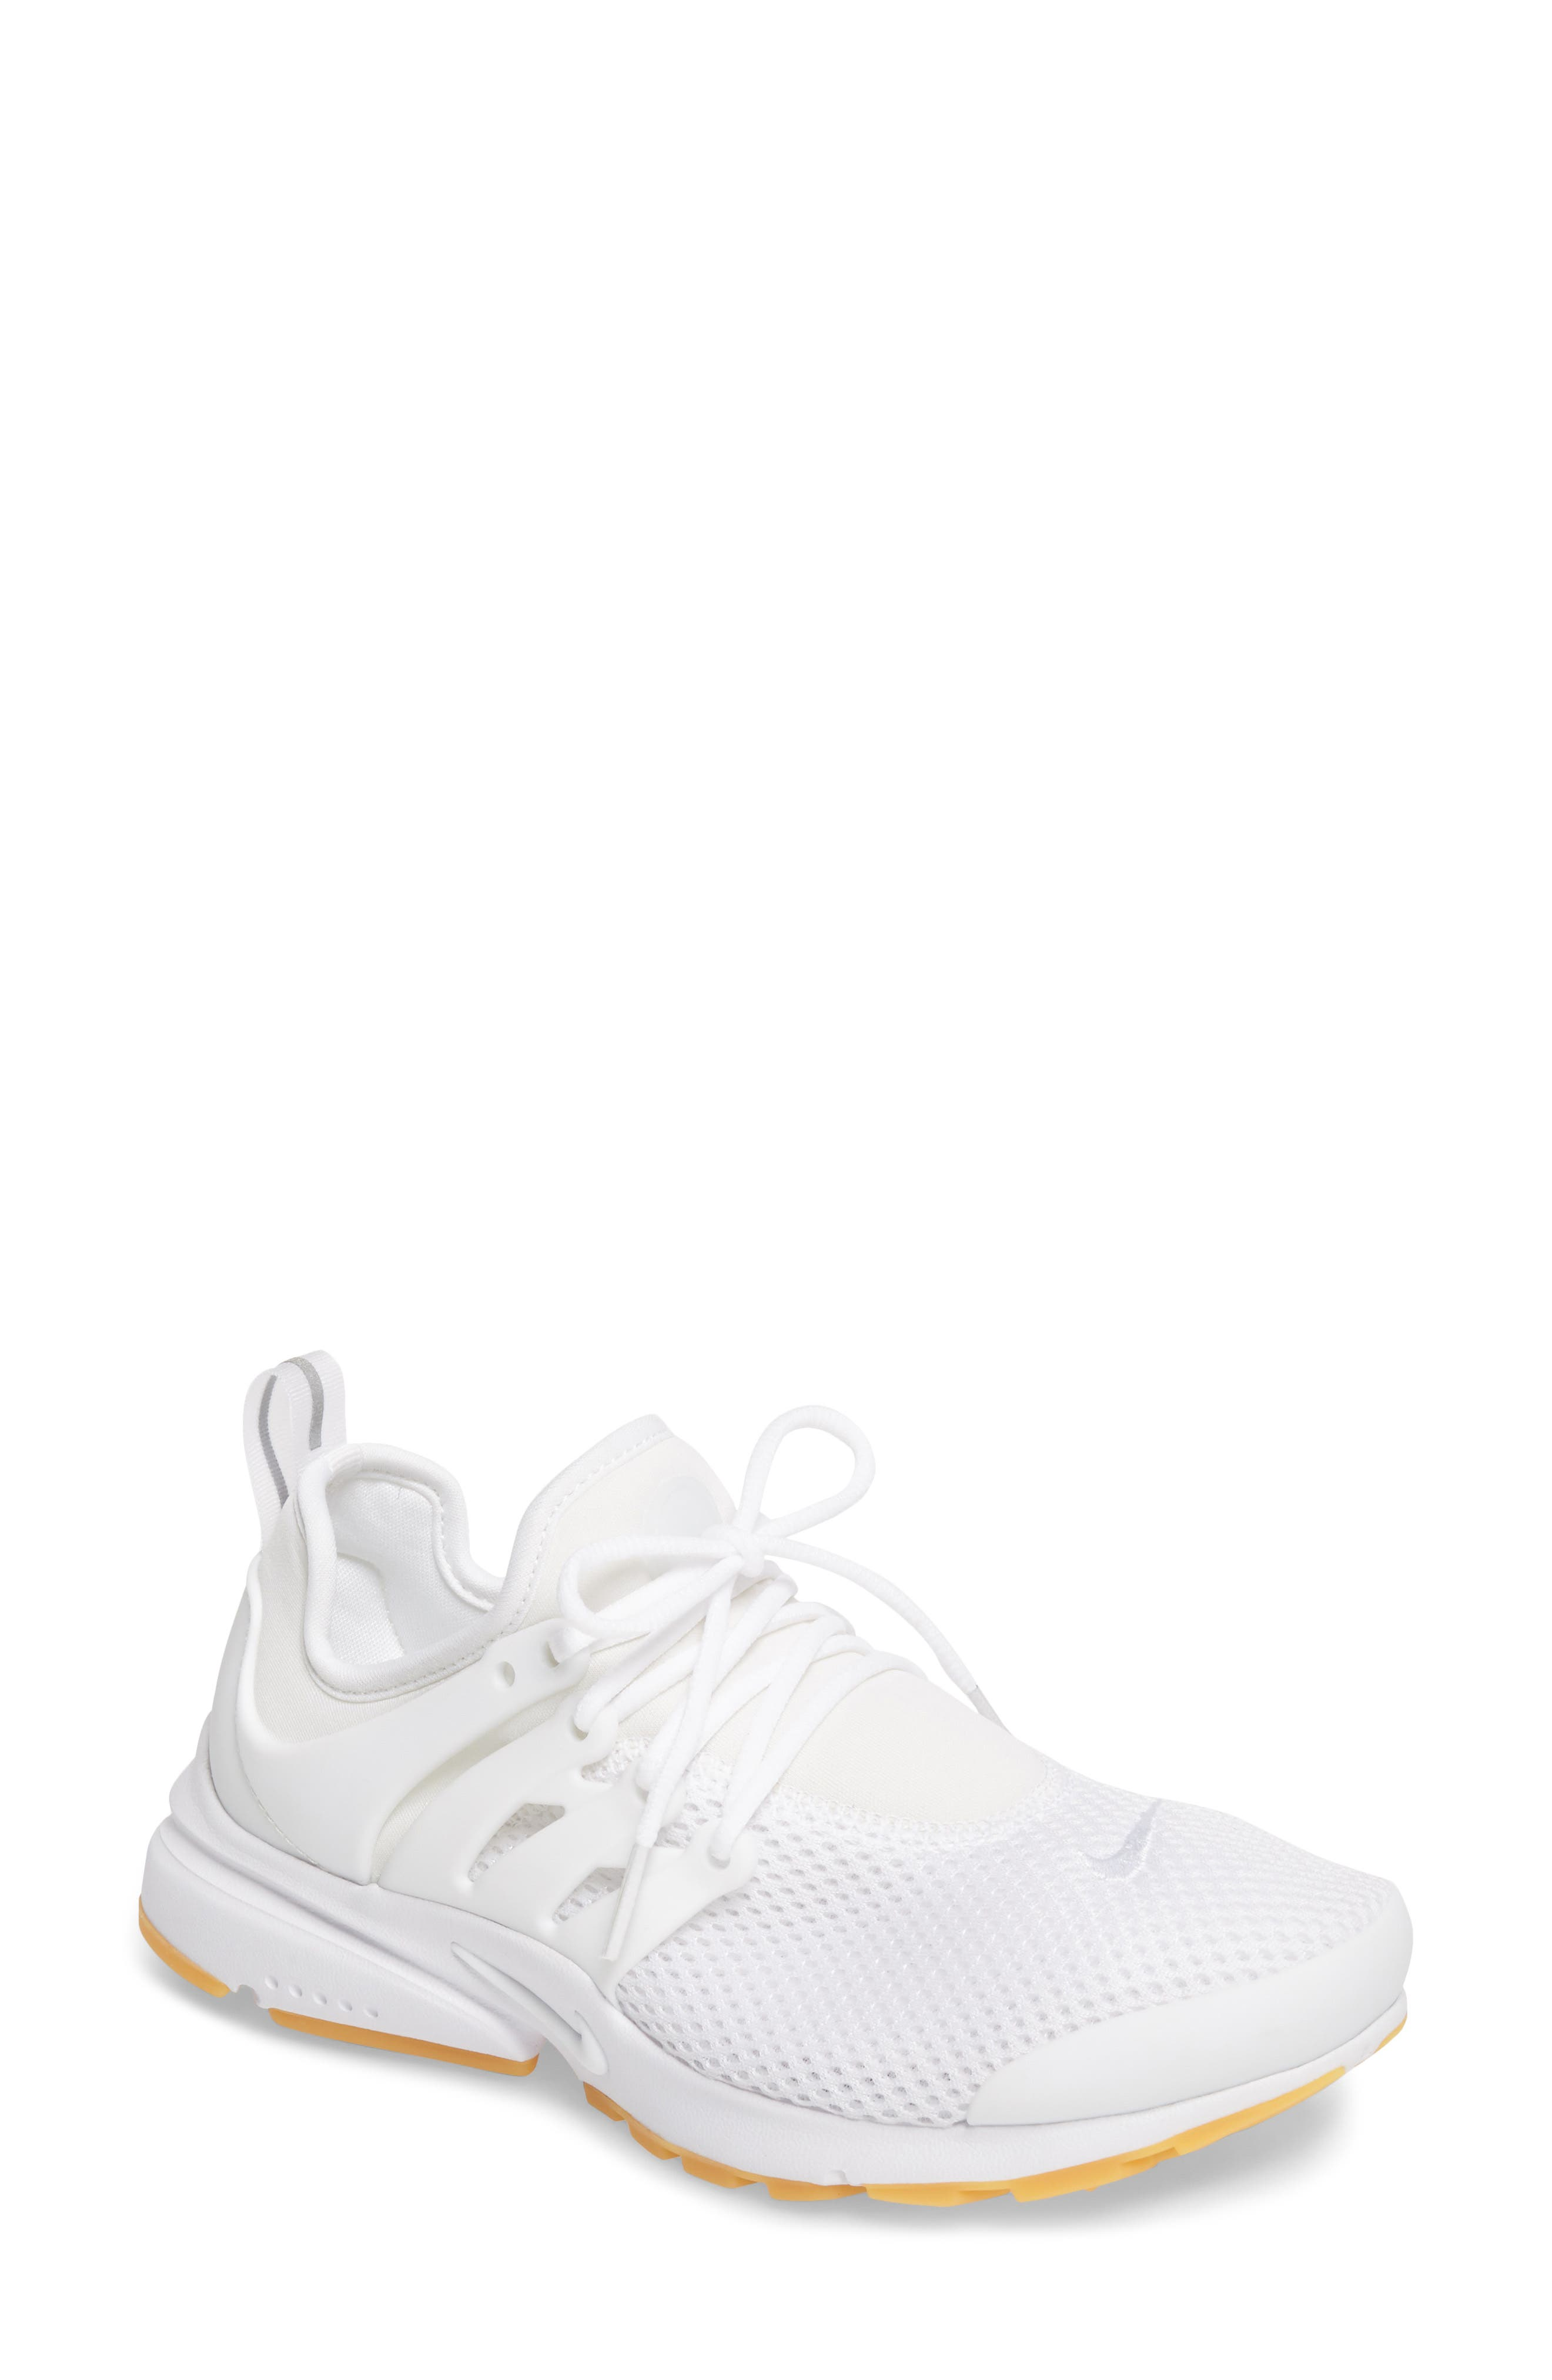 Air Presto Flyknit Ultra Sneaker,                         Main,                         color, White/ Gum Yellow/ Wolf Grey